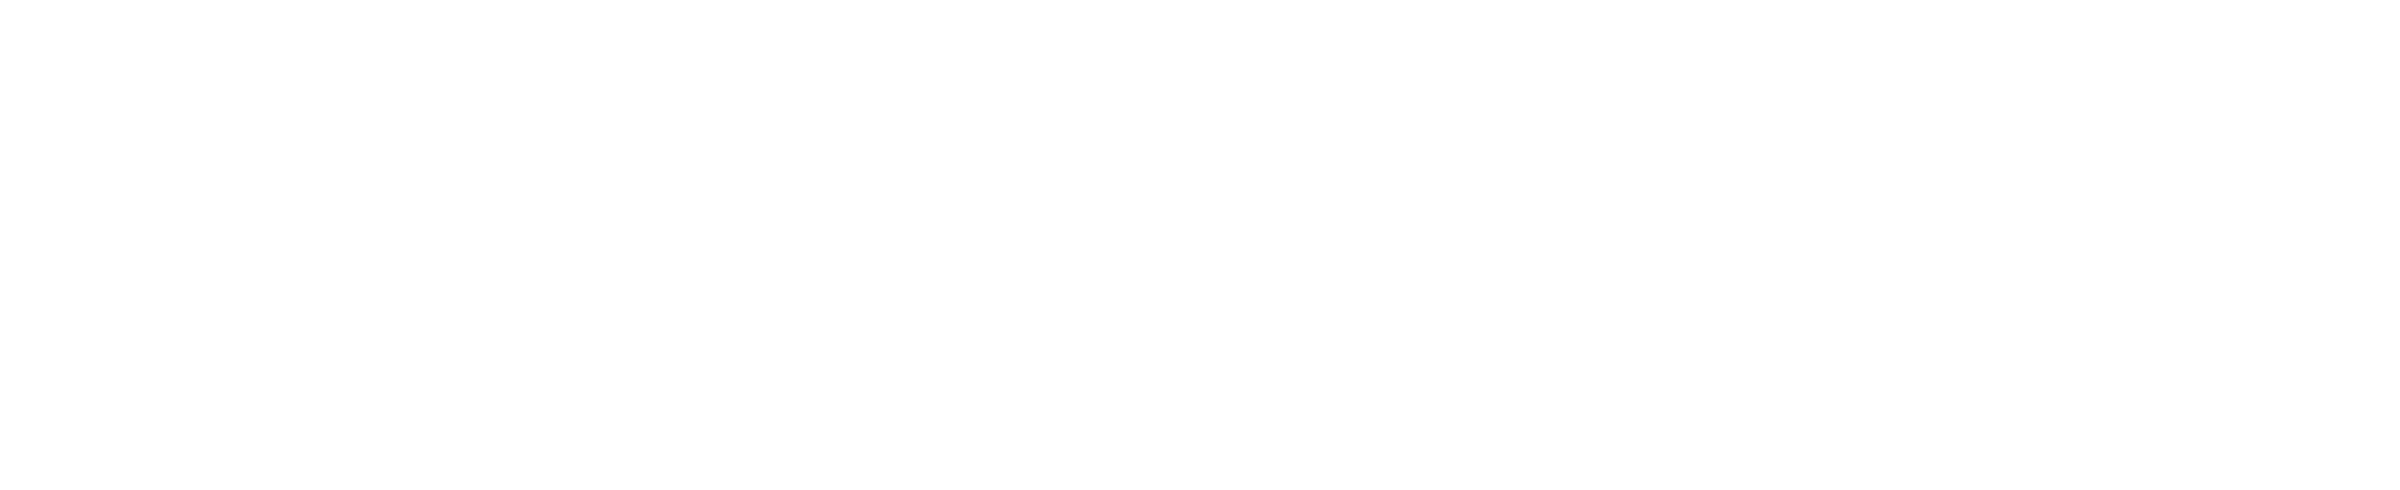 new-york-times-logo-png-transparent-white.png